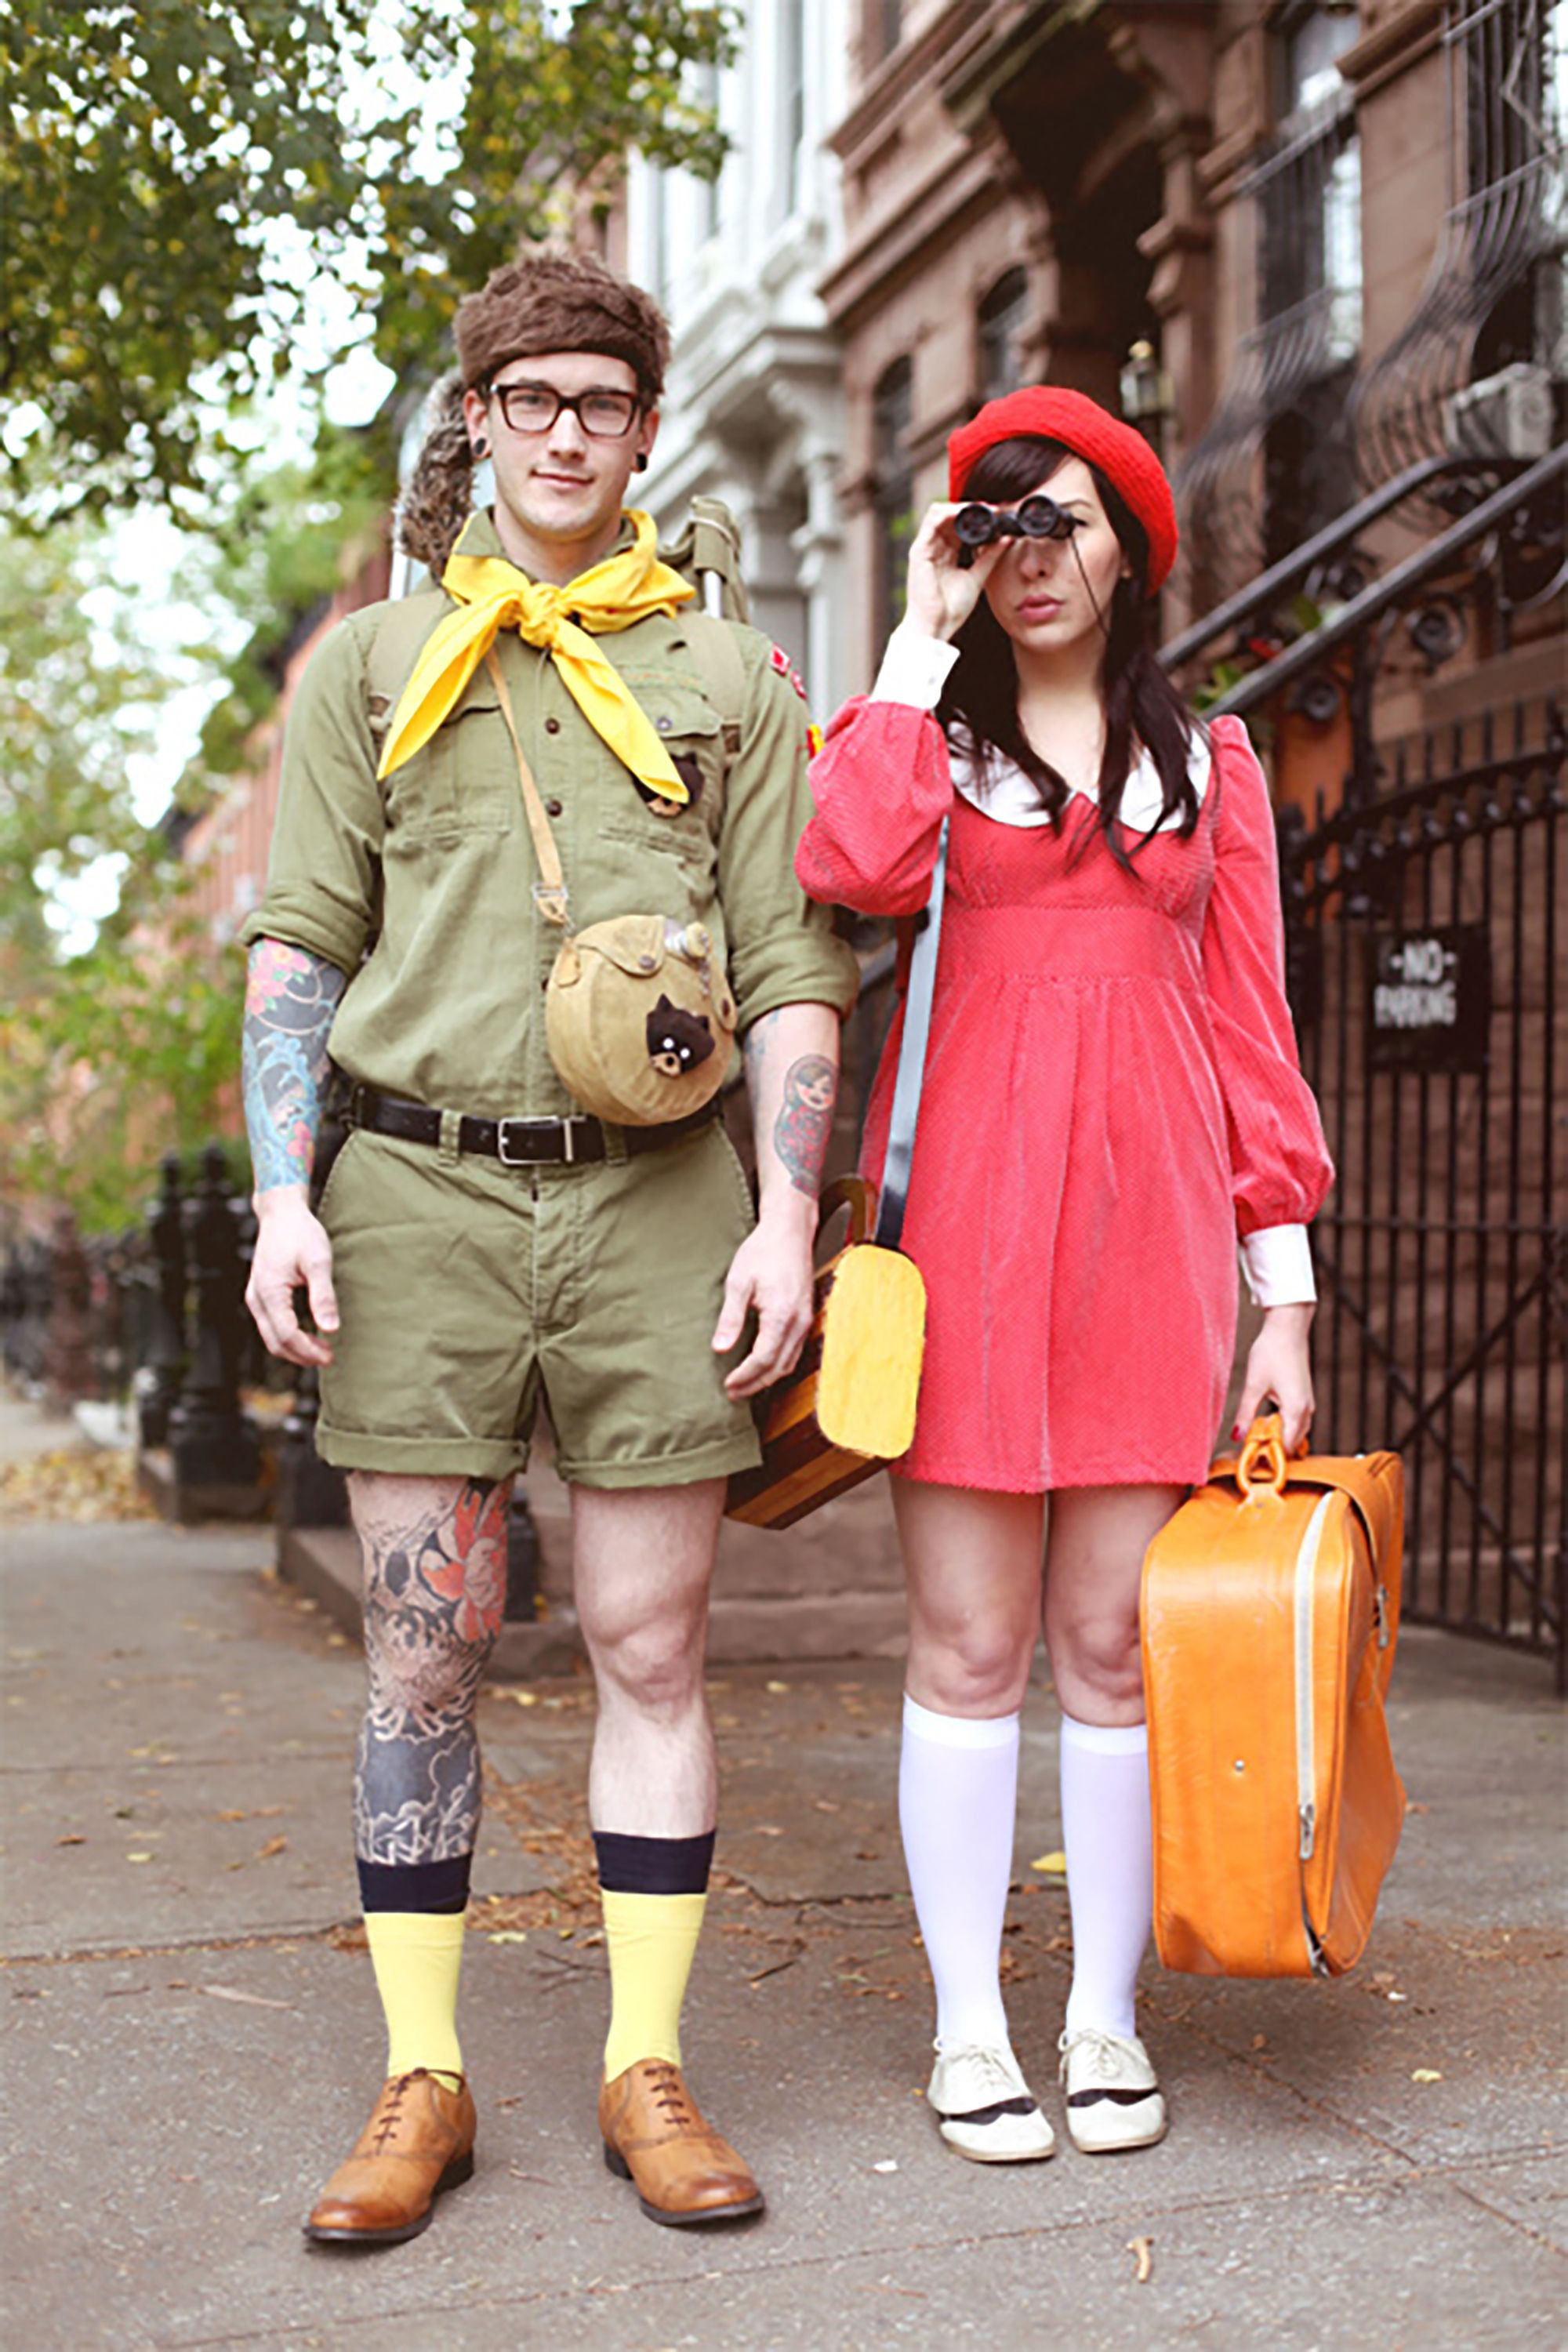 Christmas gift ideas for friends couples costumes